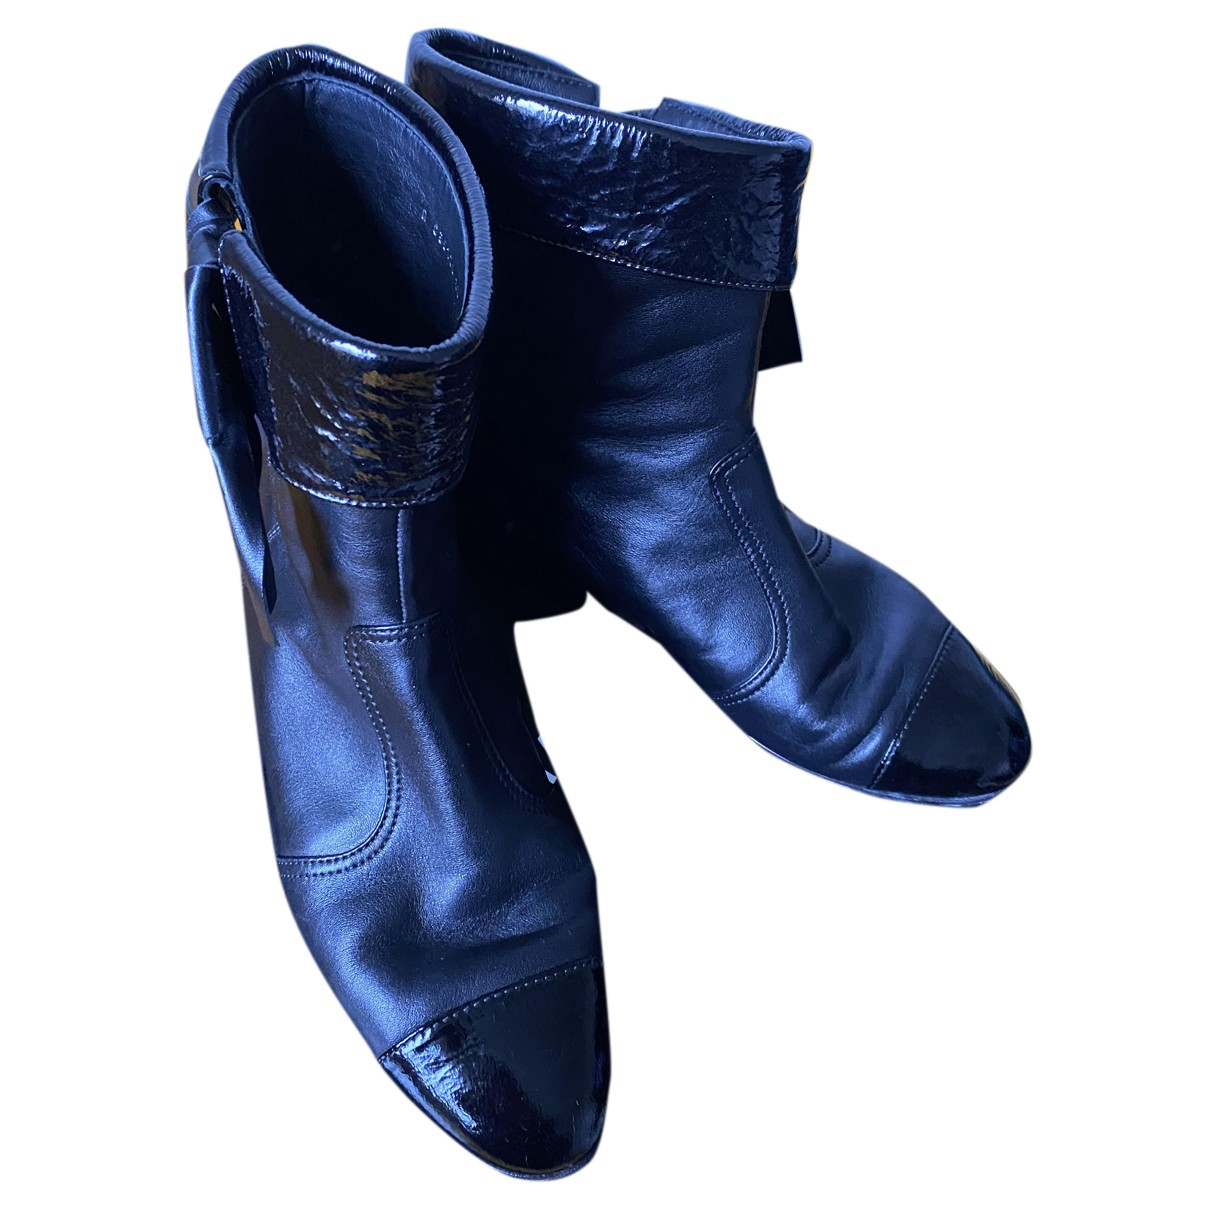 Chanel N Black Leather Boots for Women 38 EU